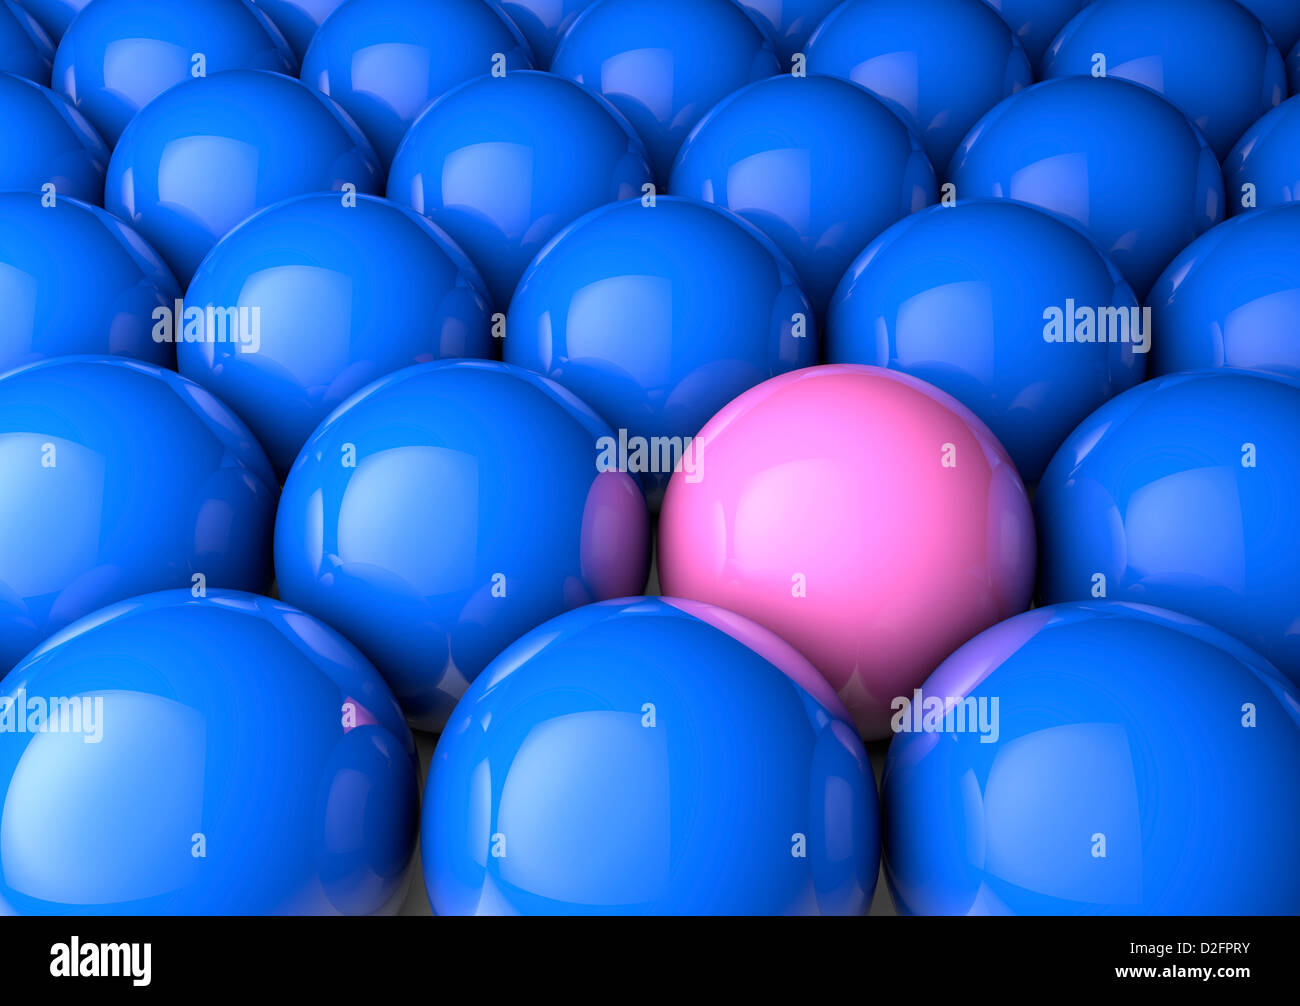 Odd one out / difference / male female inequality / equality concept - Stock Image